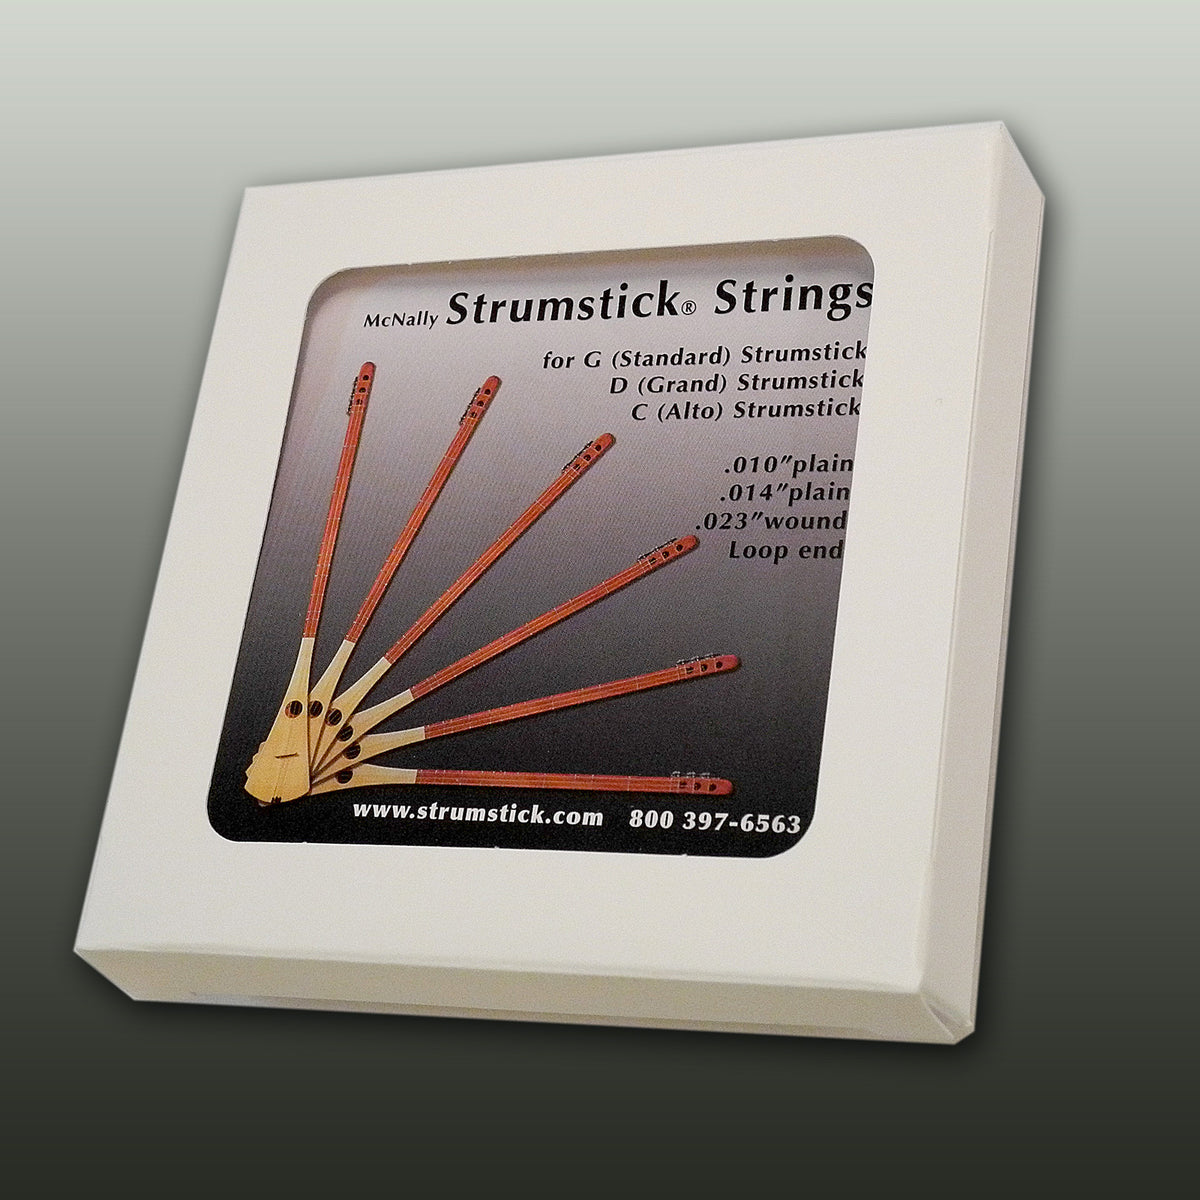 Strumstick Strings $10